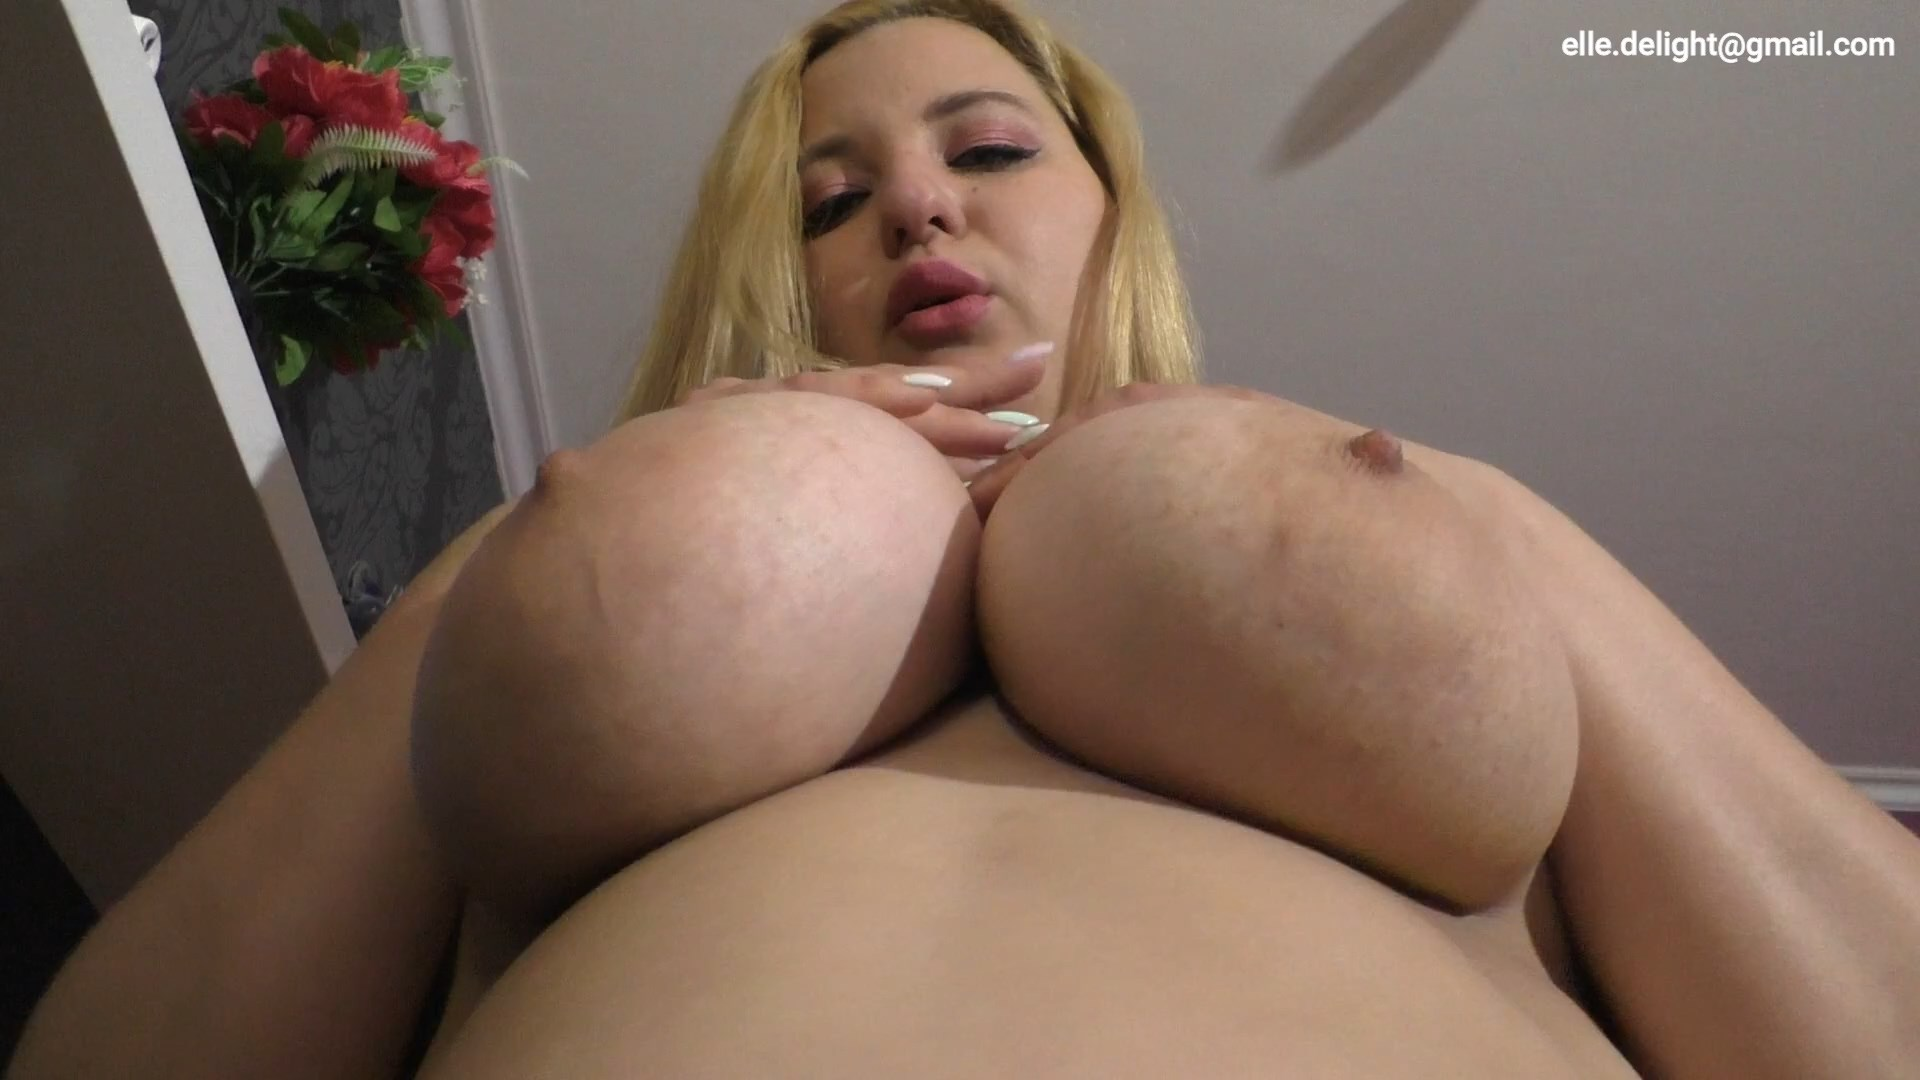 Elle Delight - Make Your Mommy Happy